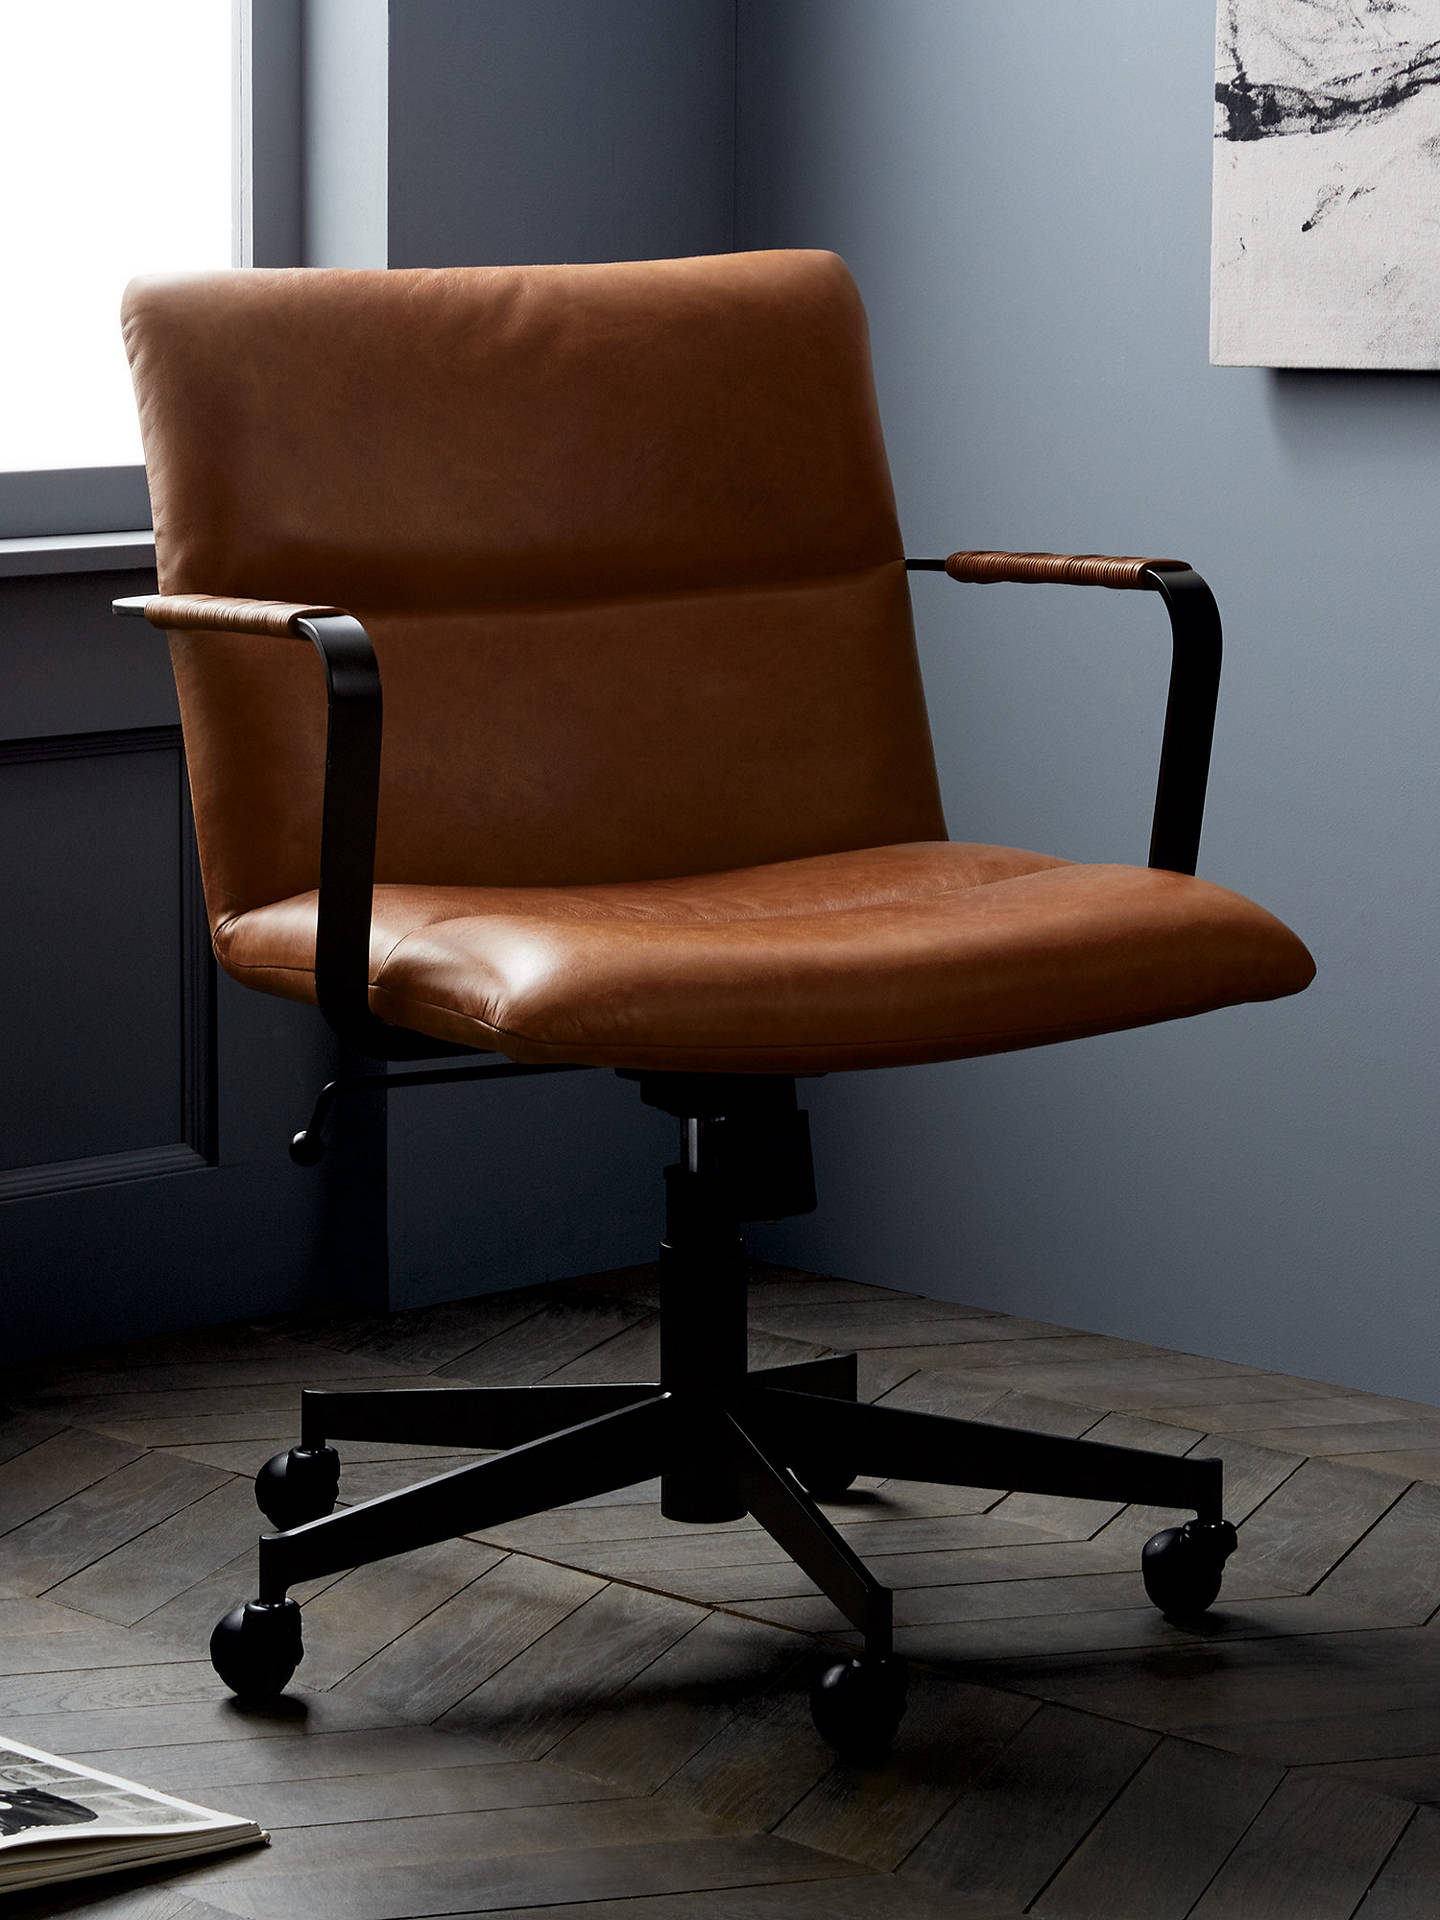 Fantastic West Elm Cooper Mid Century Leather Office Chair Tan Ncnpc Chair Design For Home Ncnpcorg